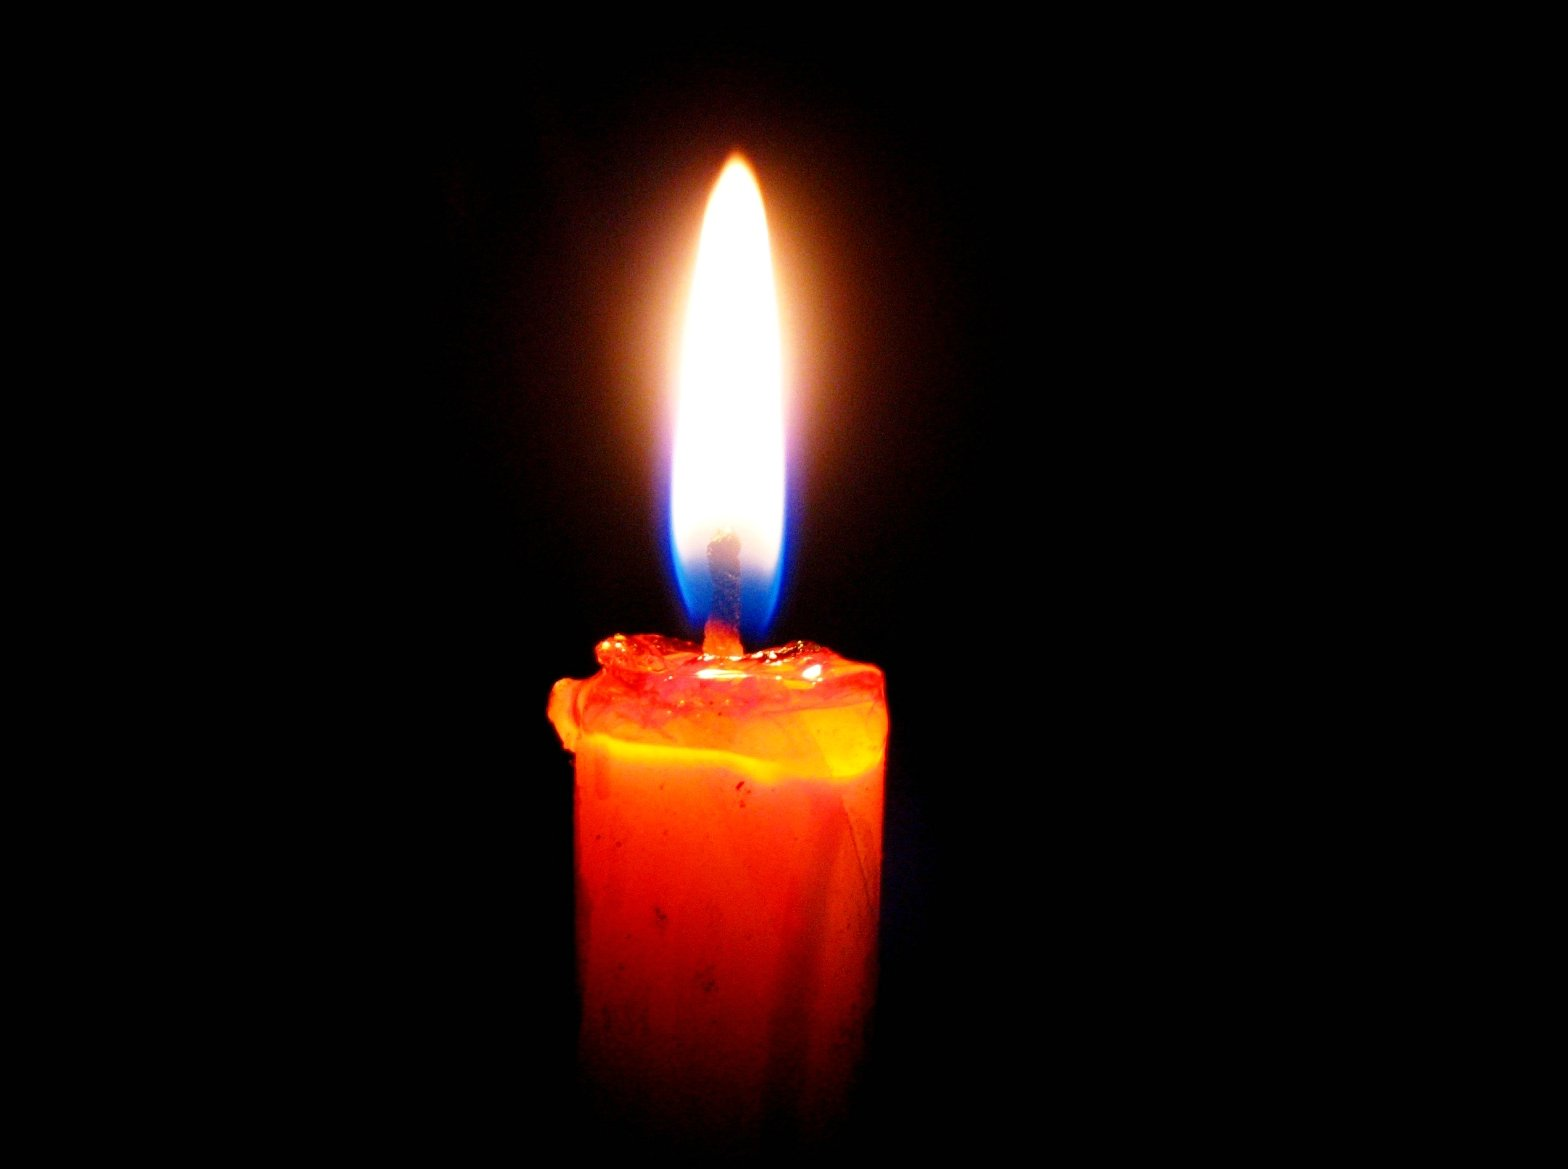 candle in the dark - photo #4